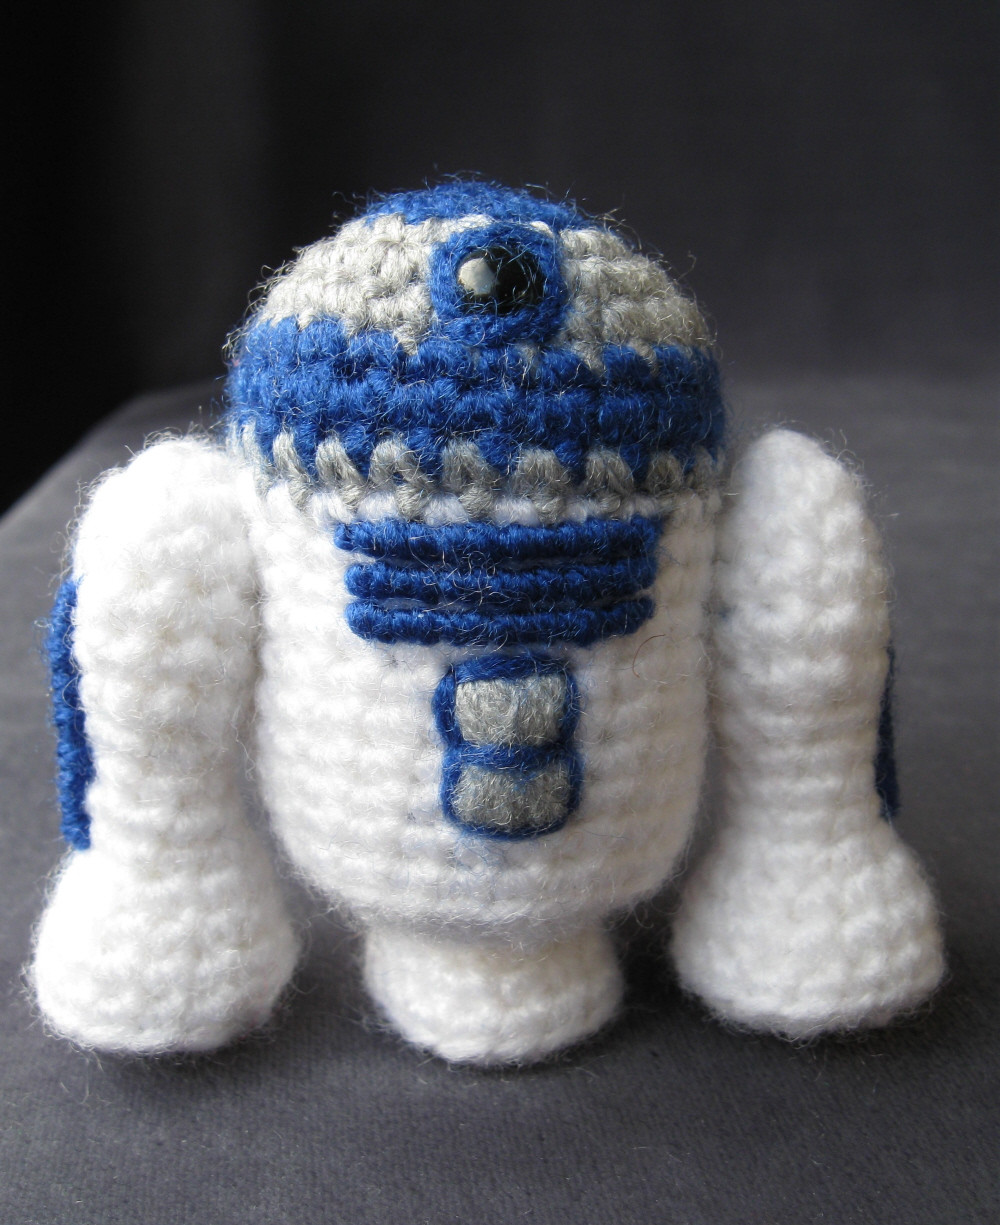 Star Wars Crochet Patterns Free Fresh How to Crochet Amigurumi and Master the Craft Of Cute Of Marvelous 49 Photos Star Wars Crochet Patterns Free